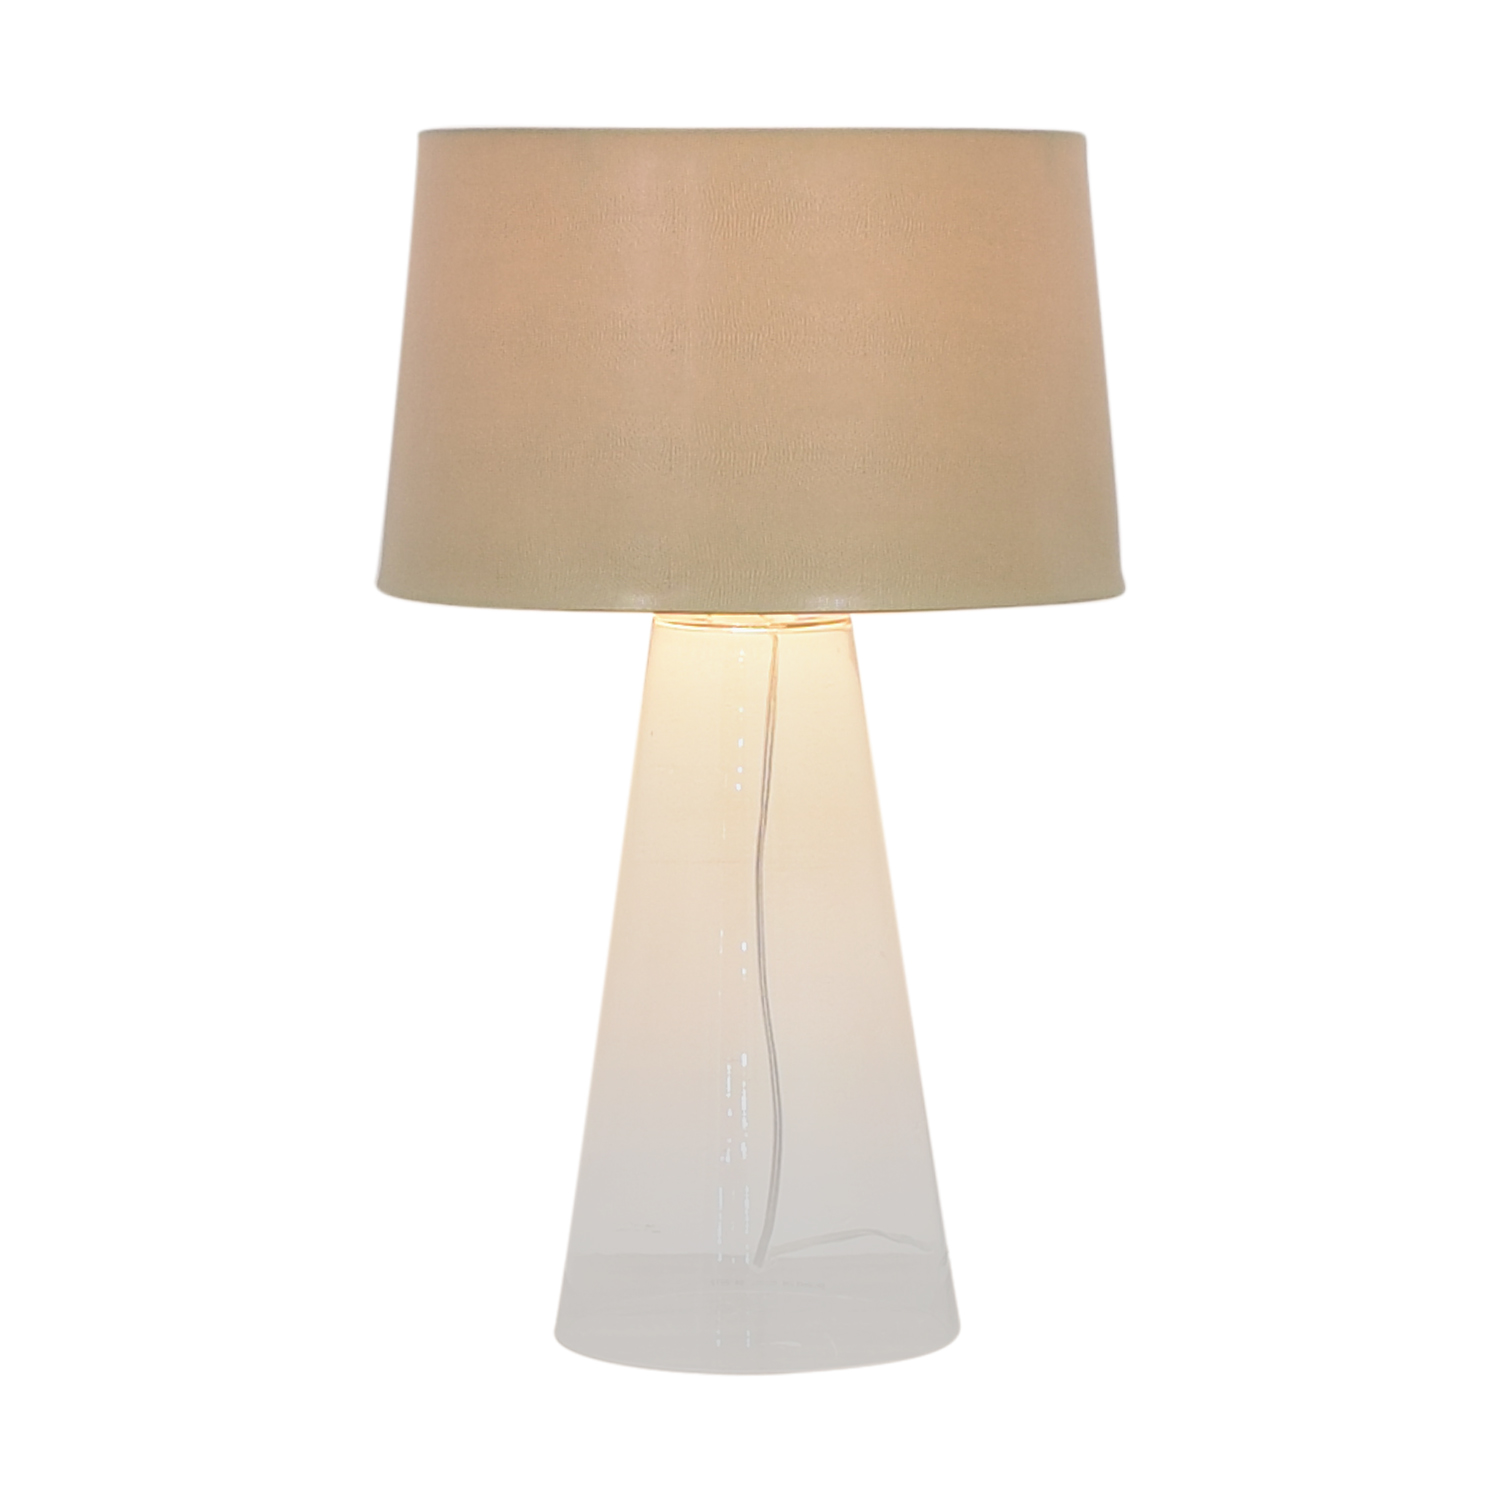 Crate & Barrel Crate & Barrel Table Lamp discount